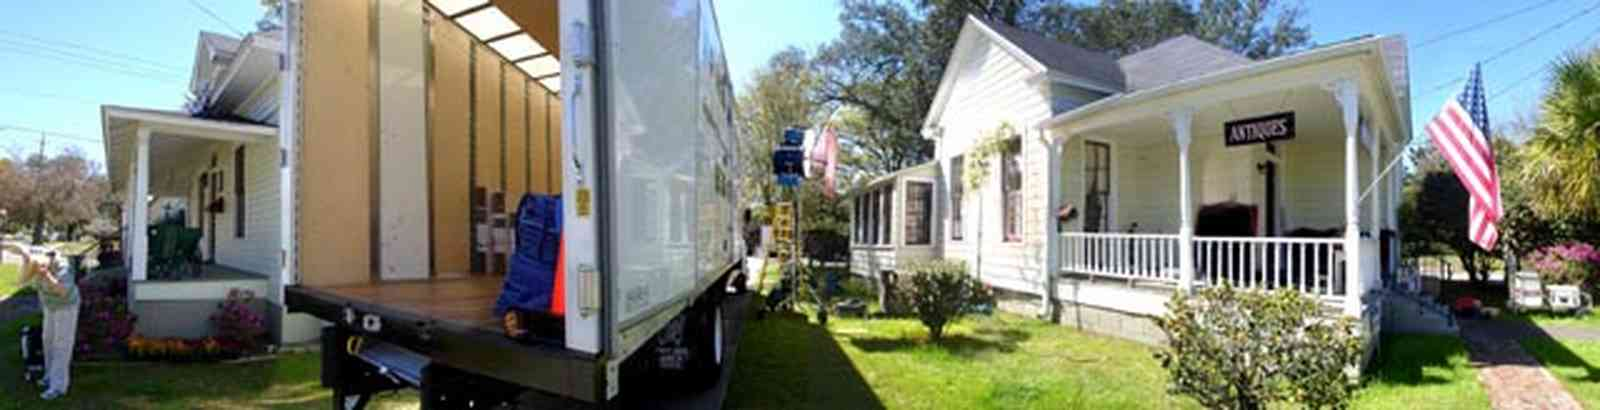 East-Hill:-Jackson-Hill-Antiques_tmaat10.jpg:  antique shop, moving truck, commercial,